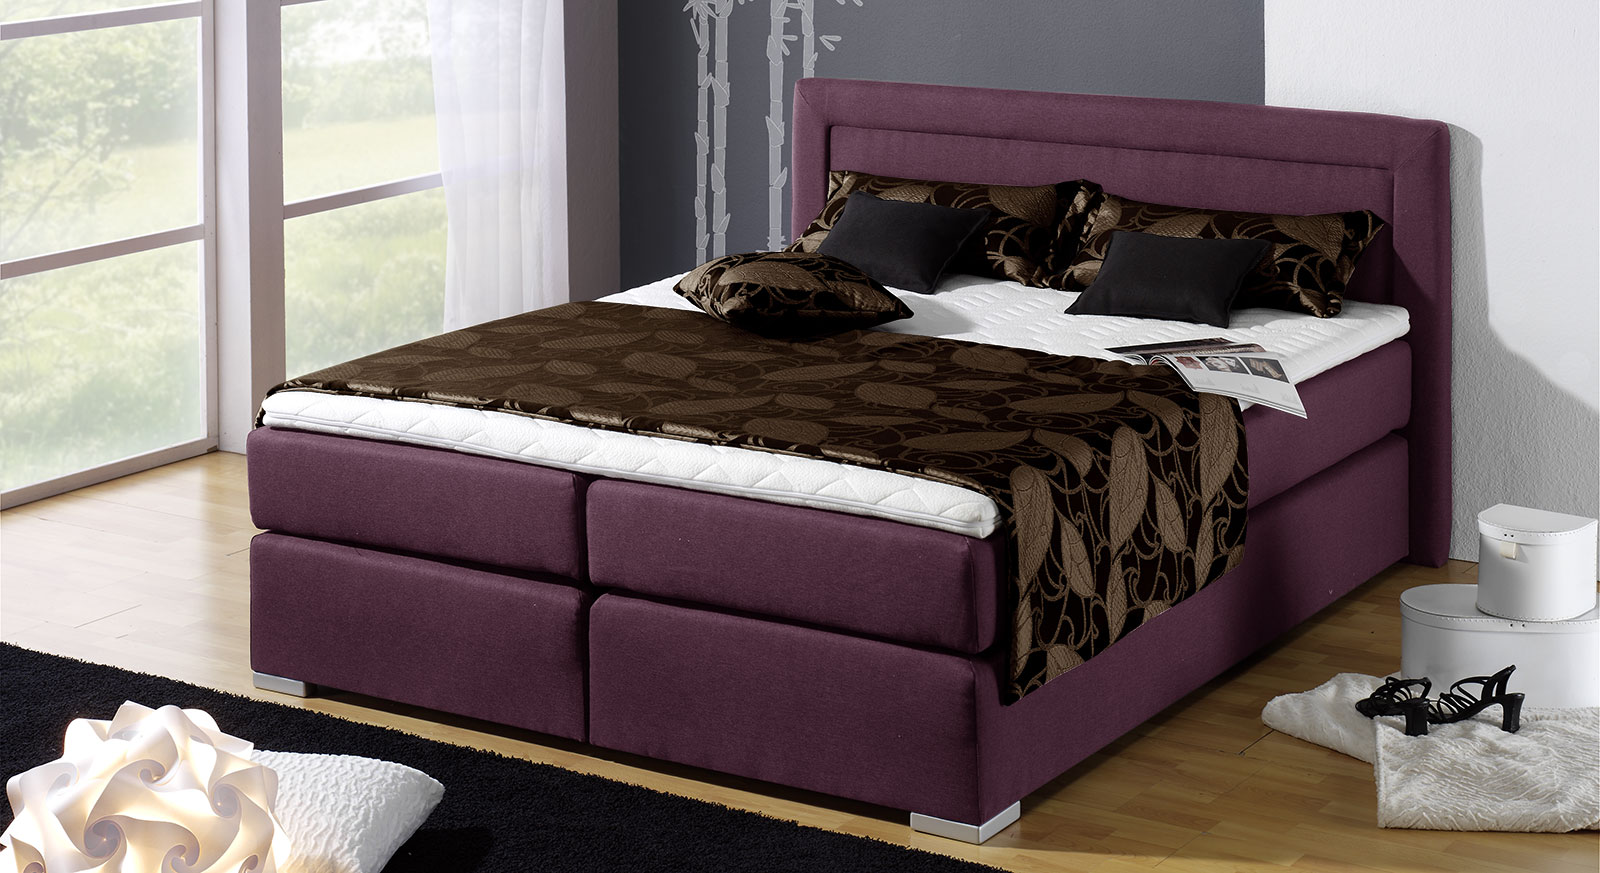 boxspringbett holz g nstig neuesten design. Black Bedroom Furniture Sets. Home Design Ideas